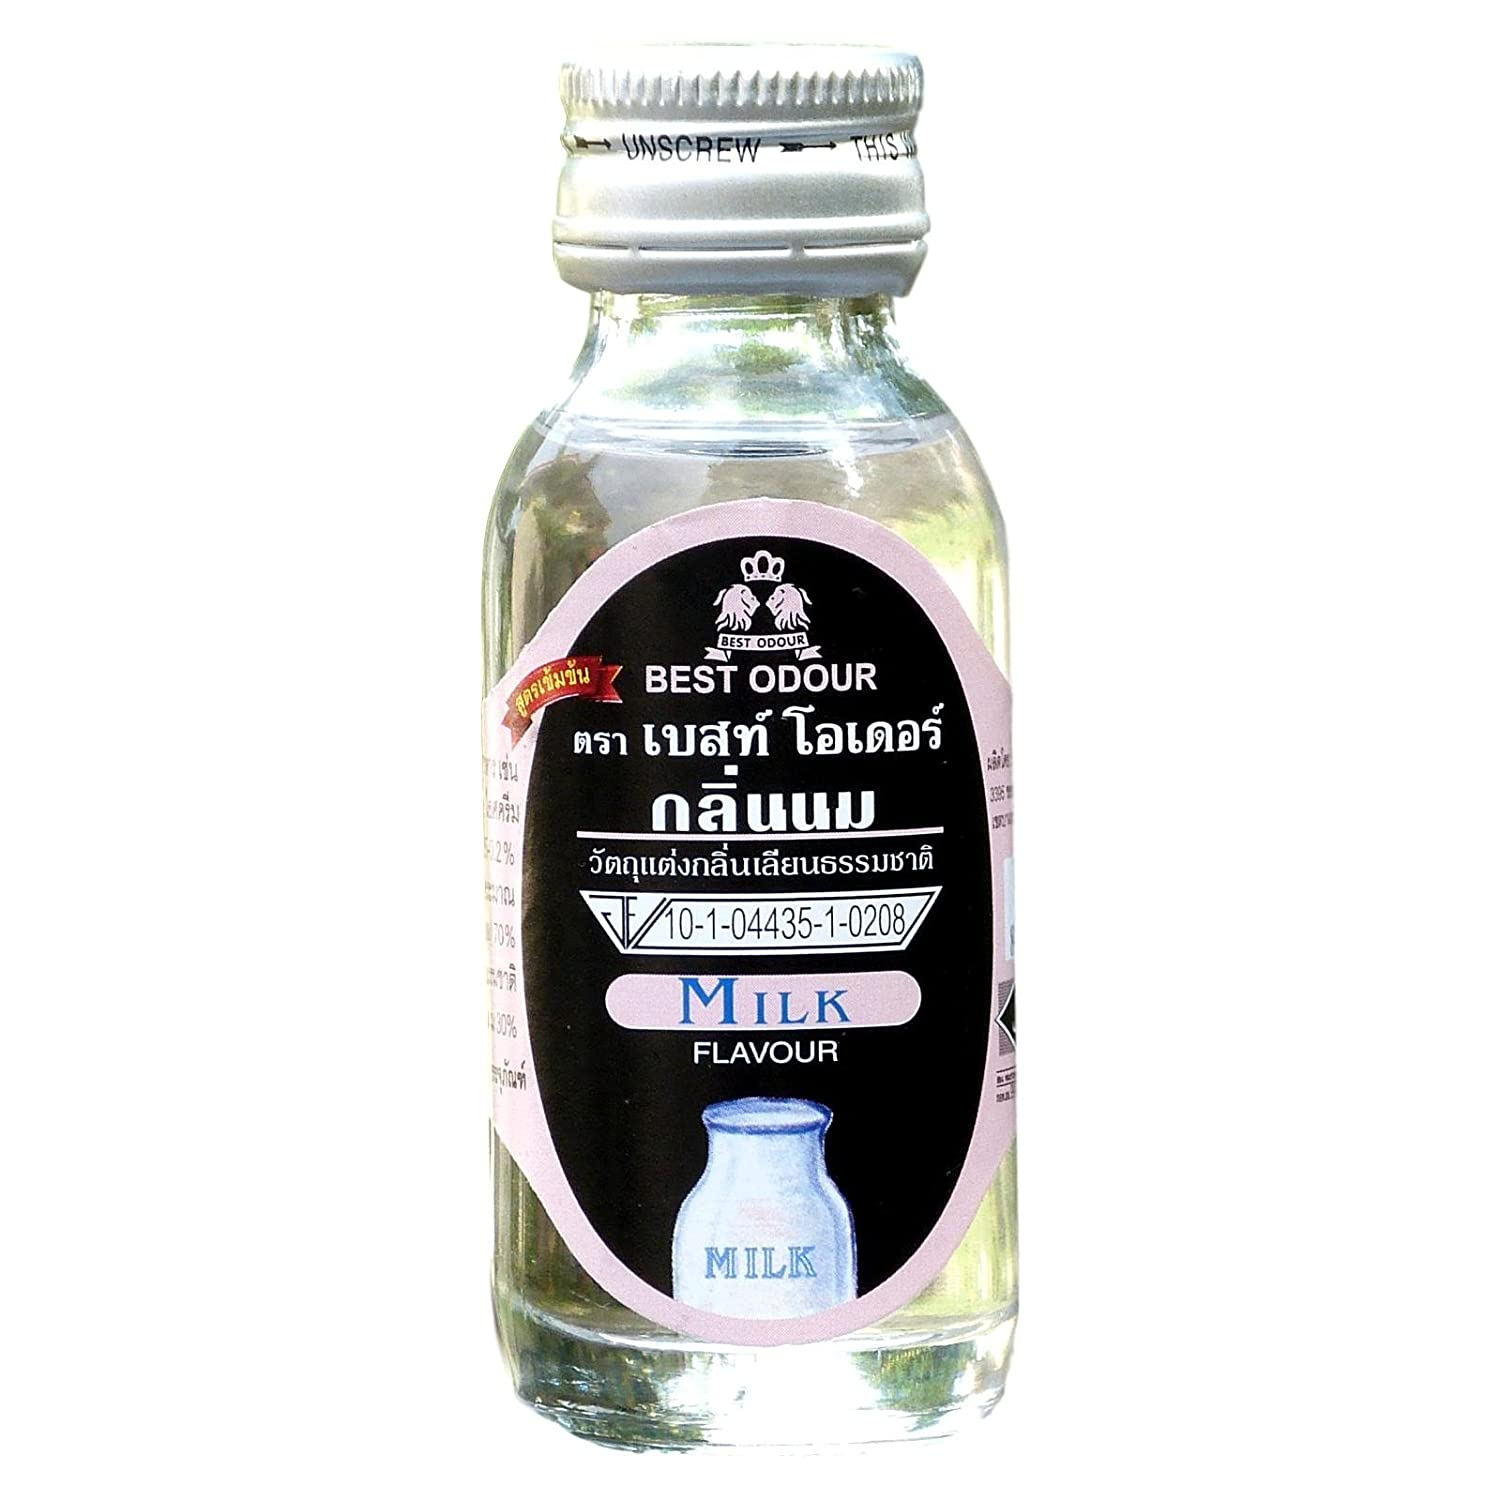 Milk Flavour By Best Odour Essence Food Baking, Cooking Supply 30 Ml.